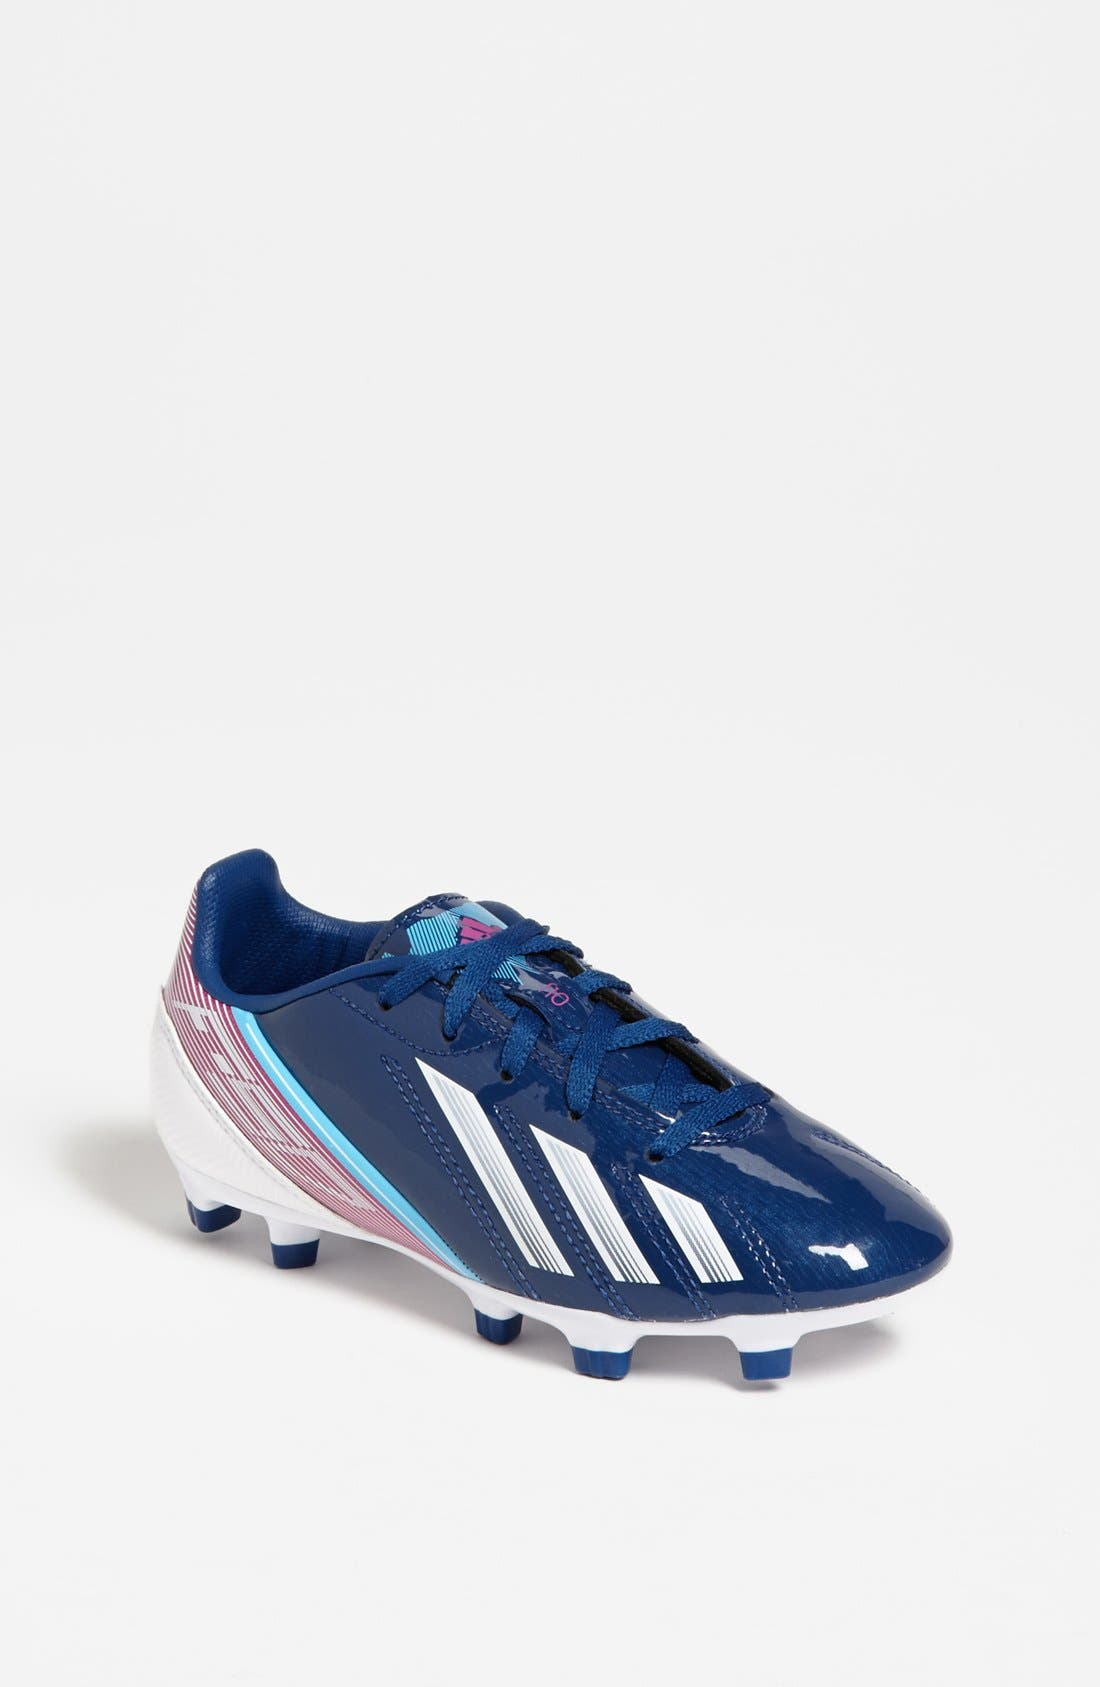 Main Image - adidas 'F10 TRX FG' Soccer Cleats (Toddler, Little Kid & Big Kid)